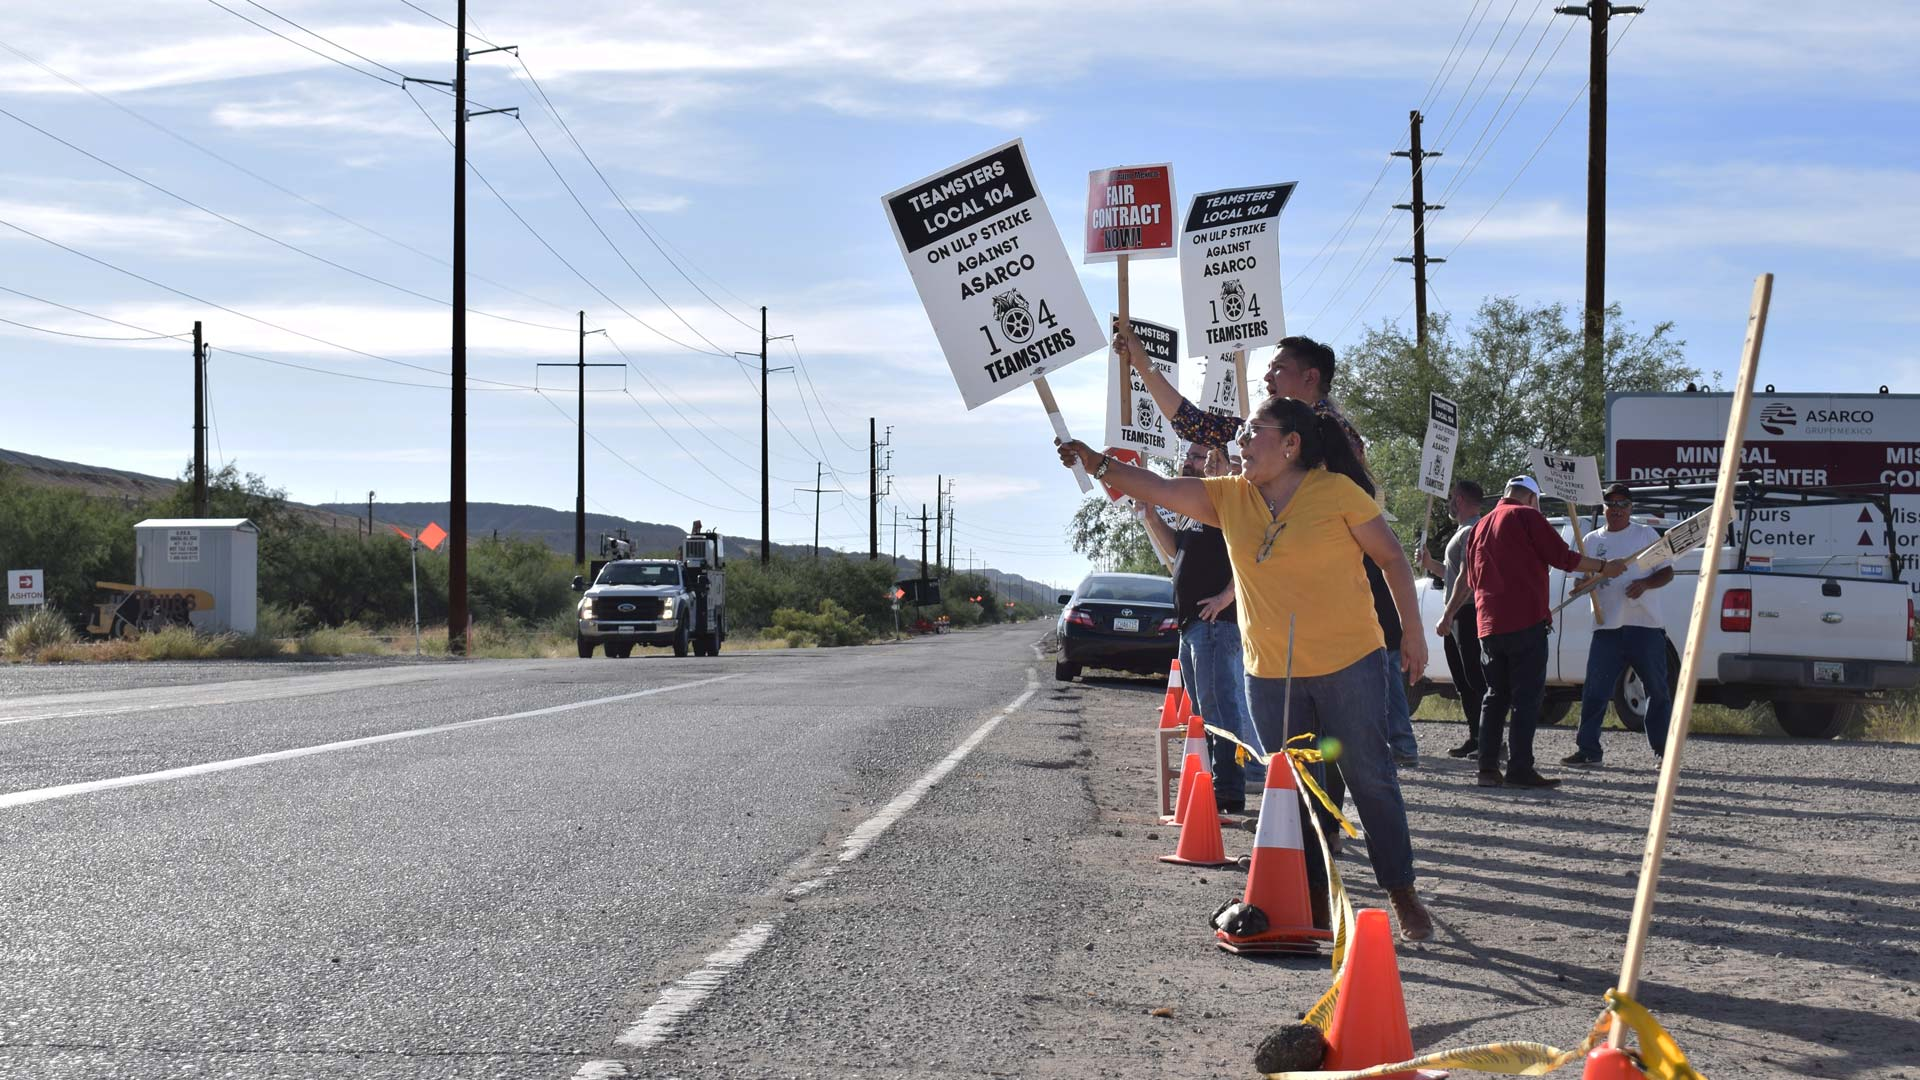 Striking workers picket outside the Mission Mine in Sahuarita on Oct. 16, 2019.